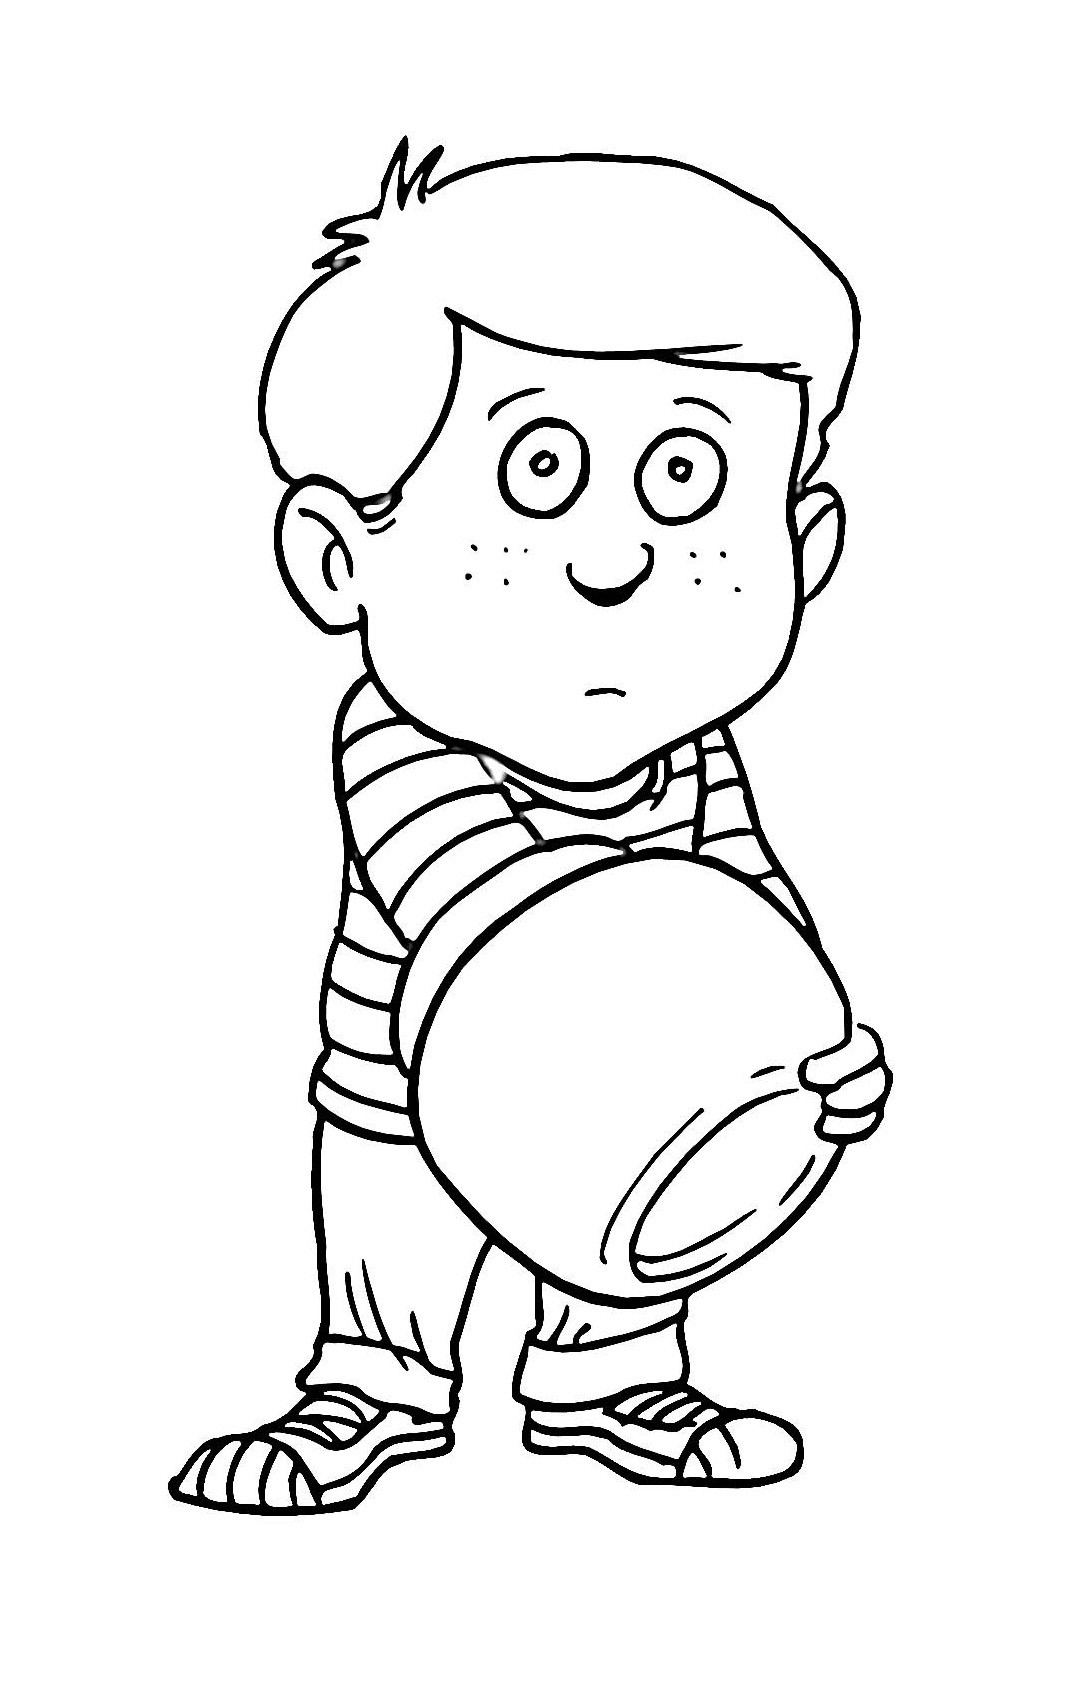 coloring pages for boys printable printable images of coloring pages for boys learning printable coloring boys for pages